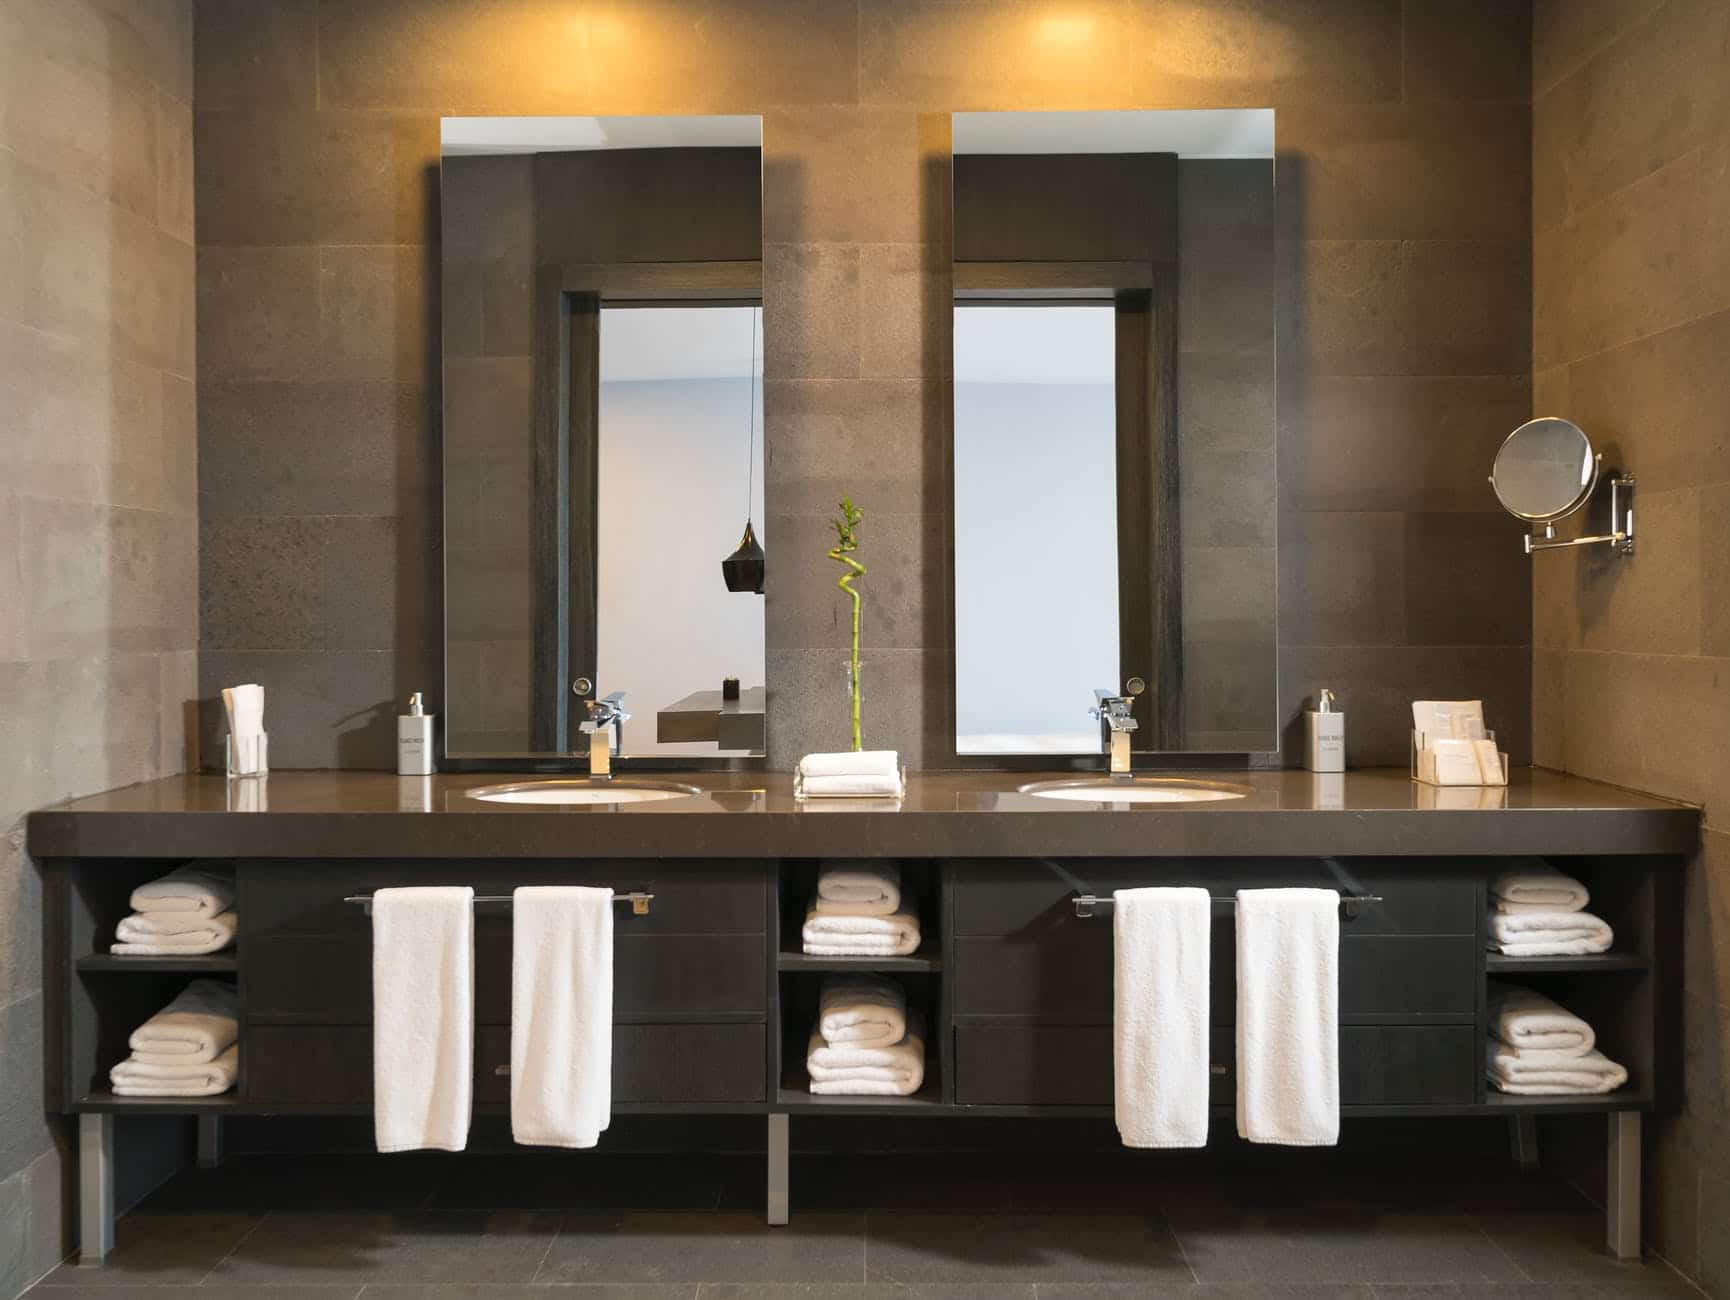 Modern Bathroom Remodel Ideas for Your Next Remodel